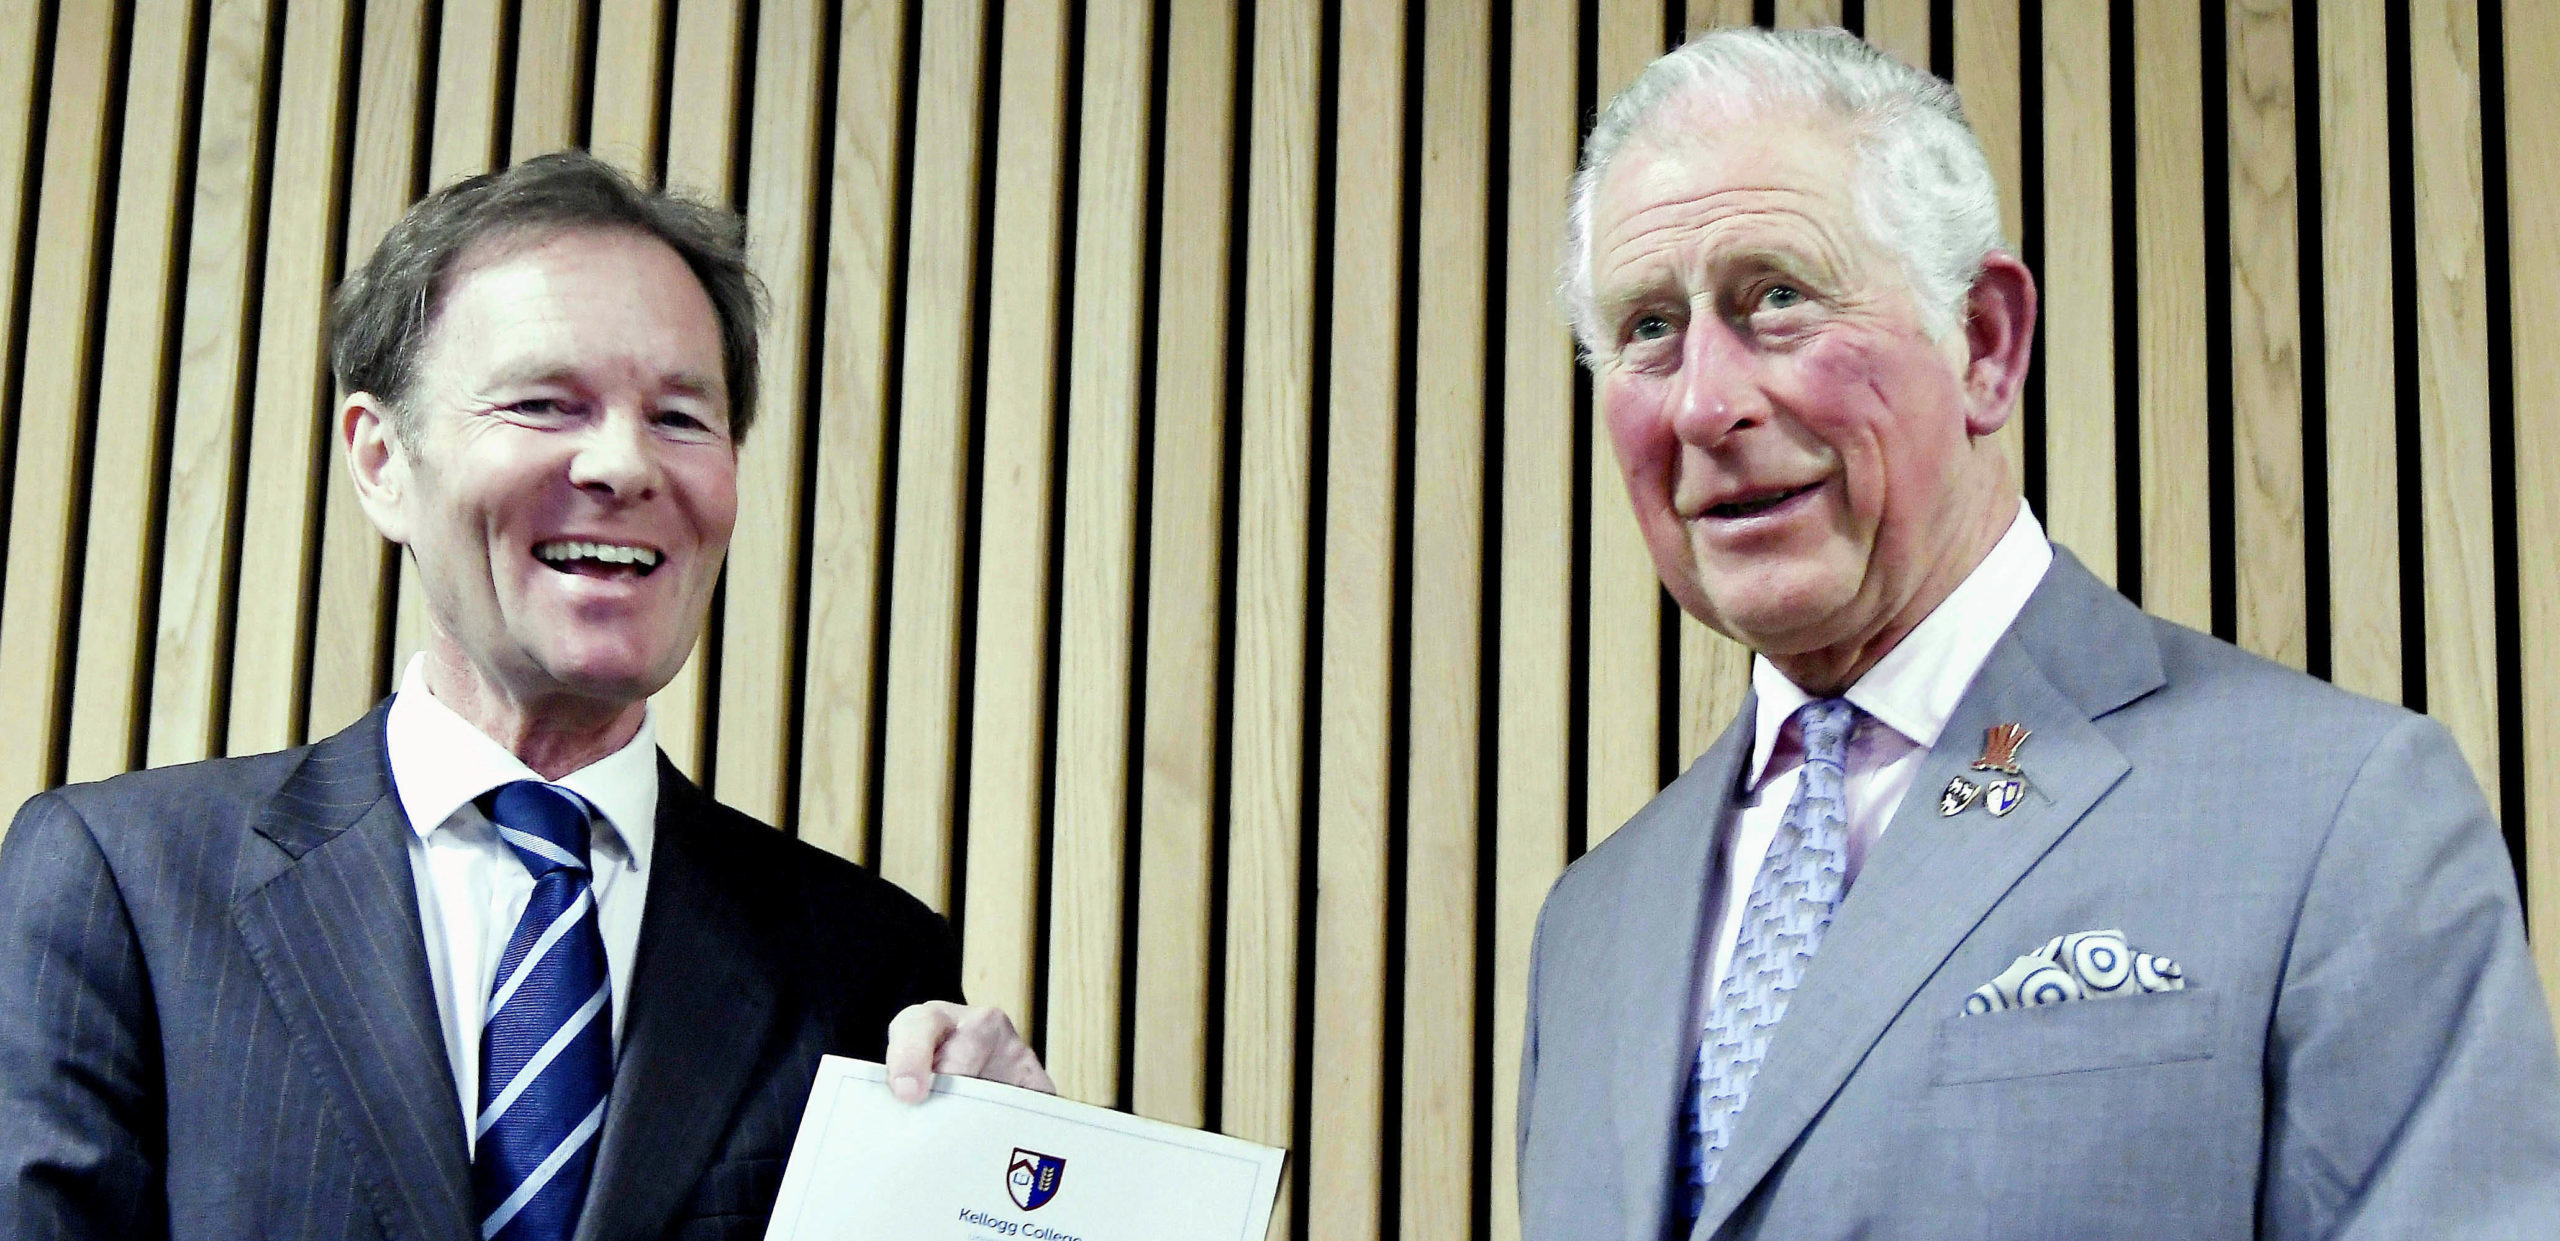 HRH The Prince of Wales is presented with Bynum Tudor Fellowship